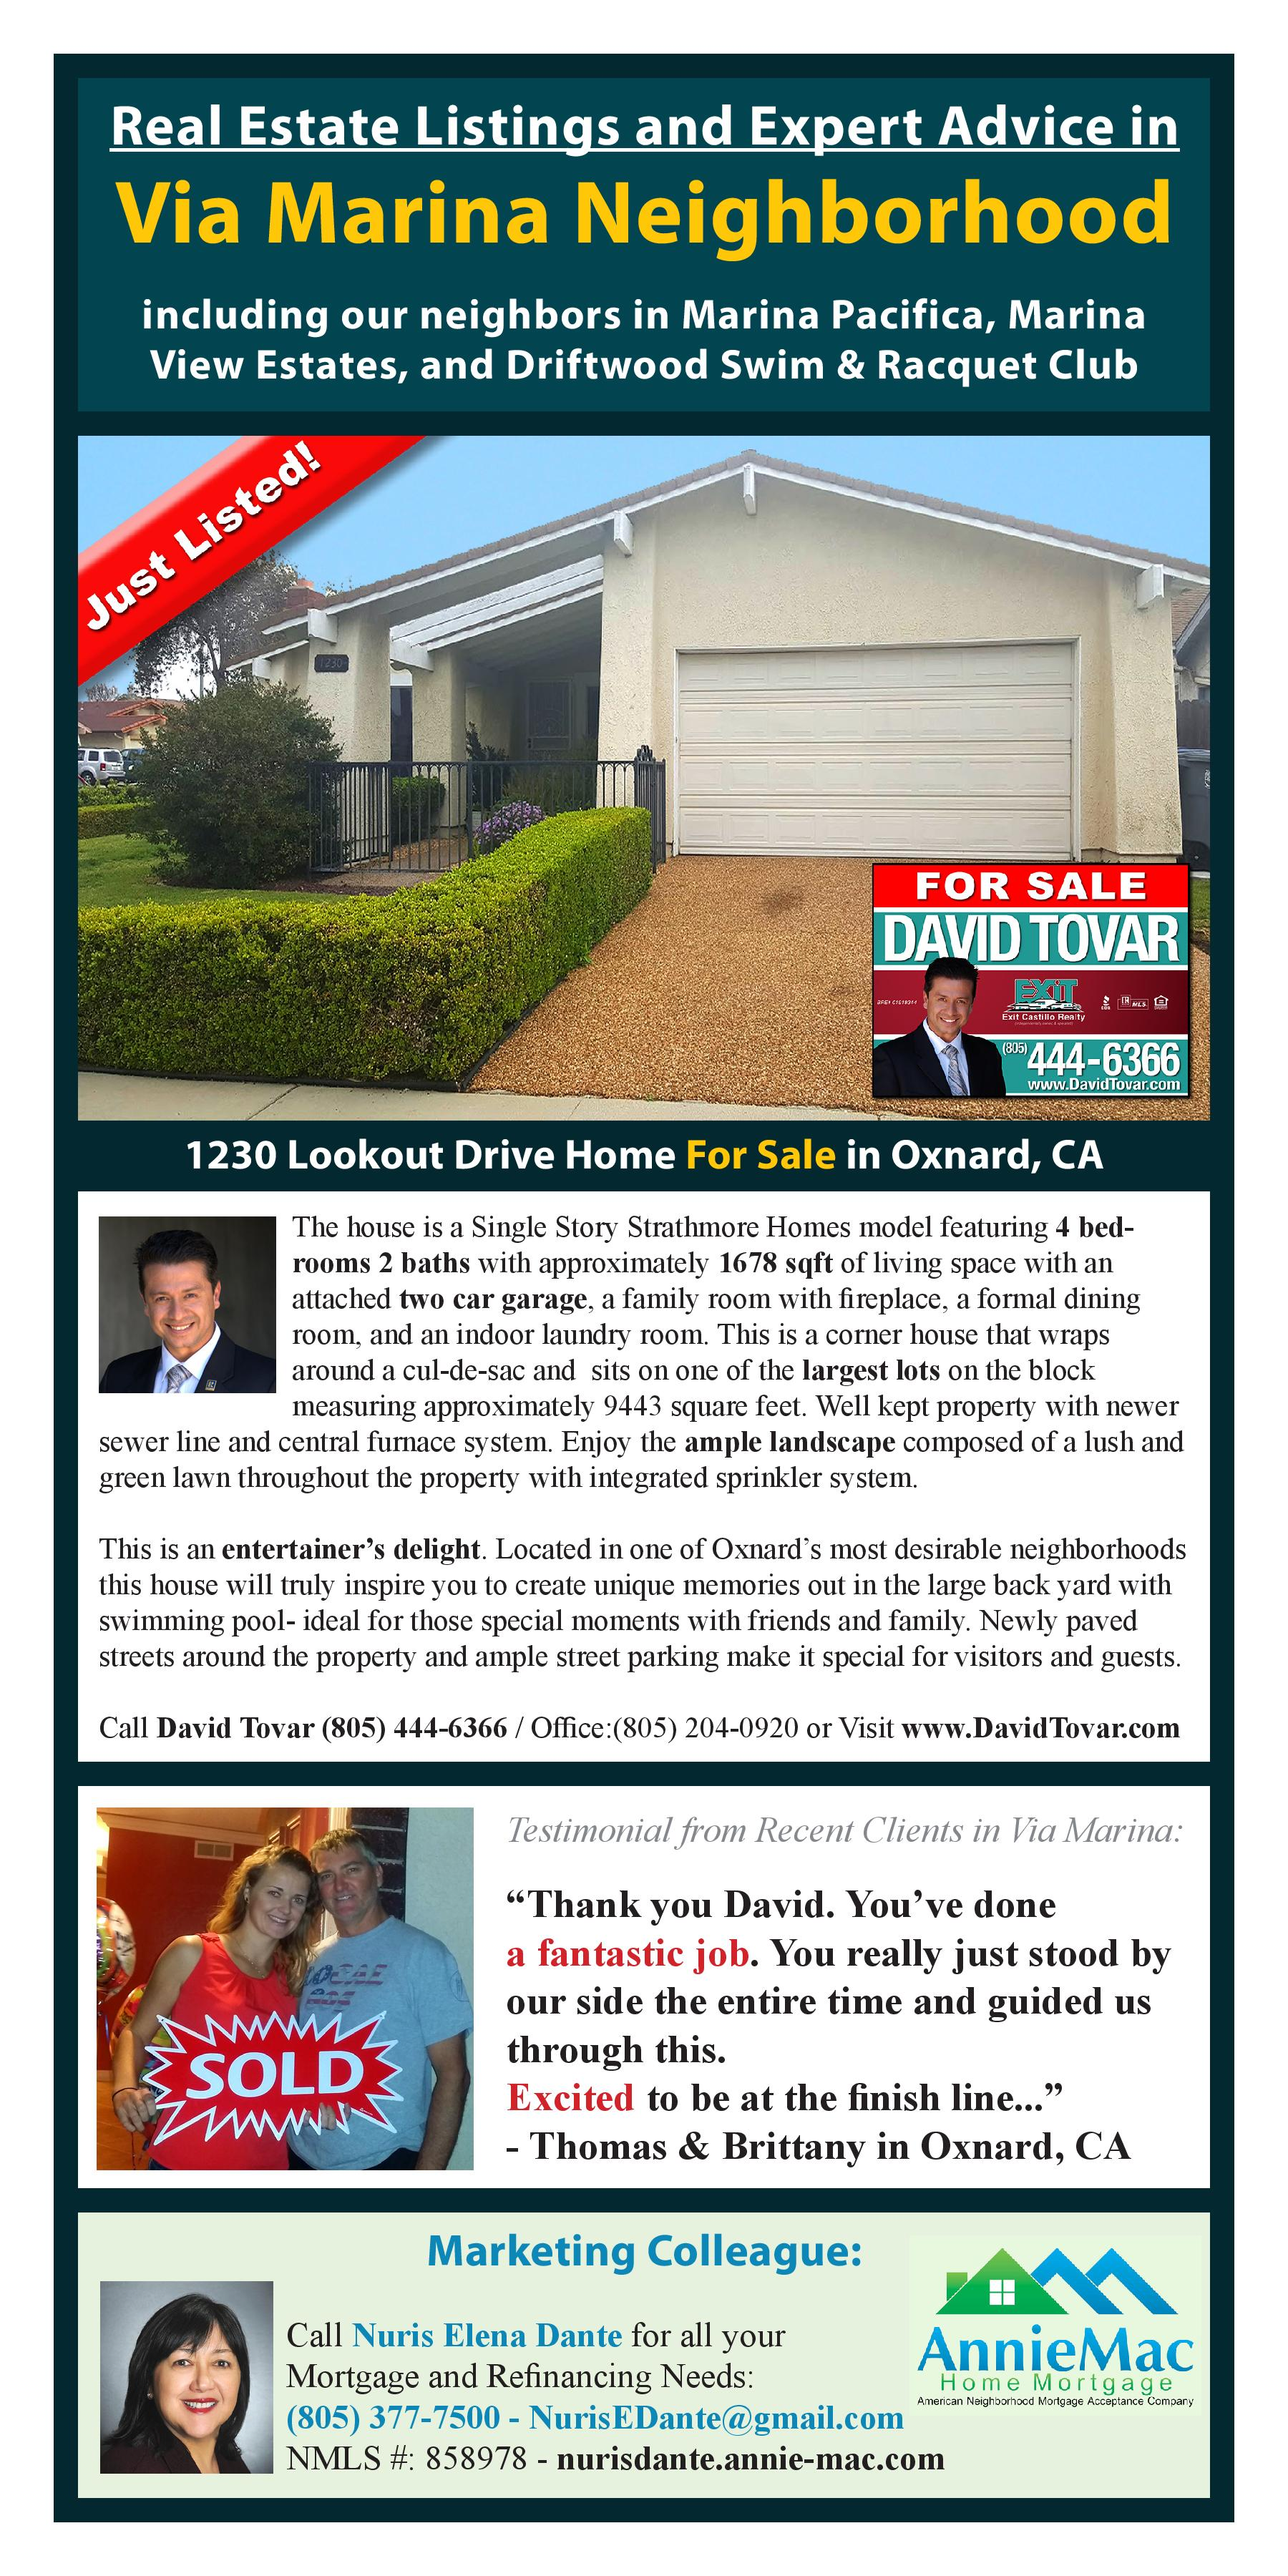 Just Listed 1230 Lookout Dr Home for Sale in Oxnard by David Tovar Realtor